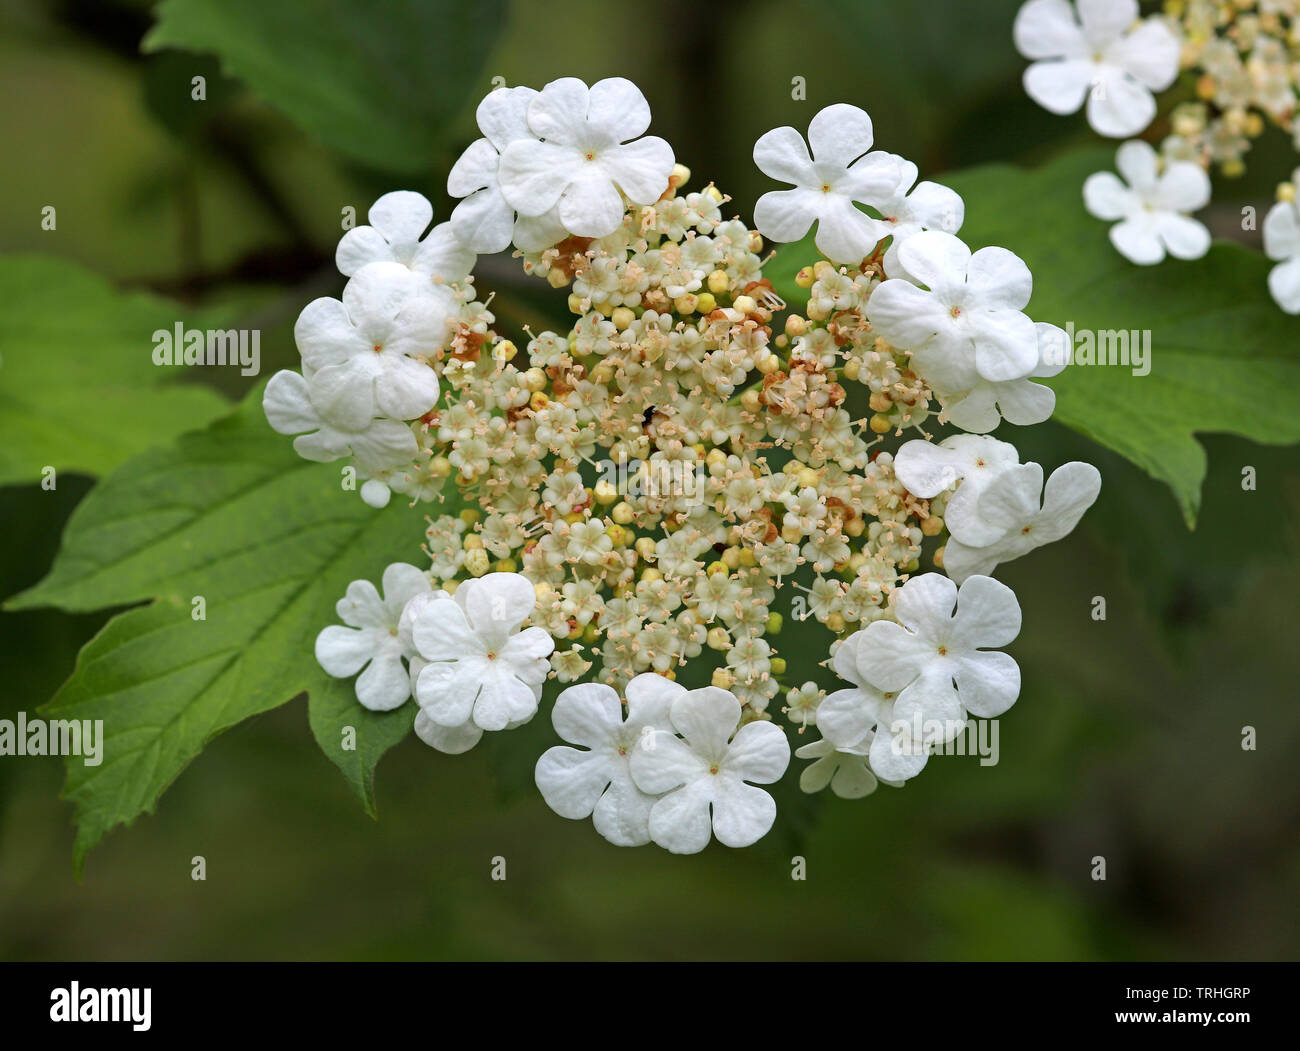 A view of the flower of a Guelder Rose, Viburnum opulus, in a nature reserve at Alderford Common, Alderford, Norfolk, England, United Kingdom, Europe. - Stock Image